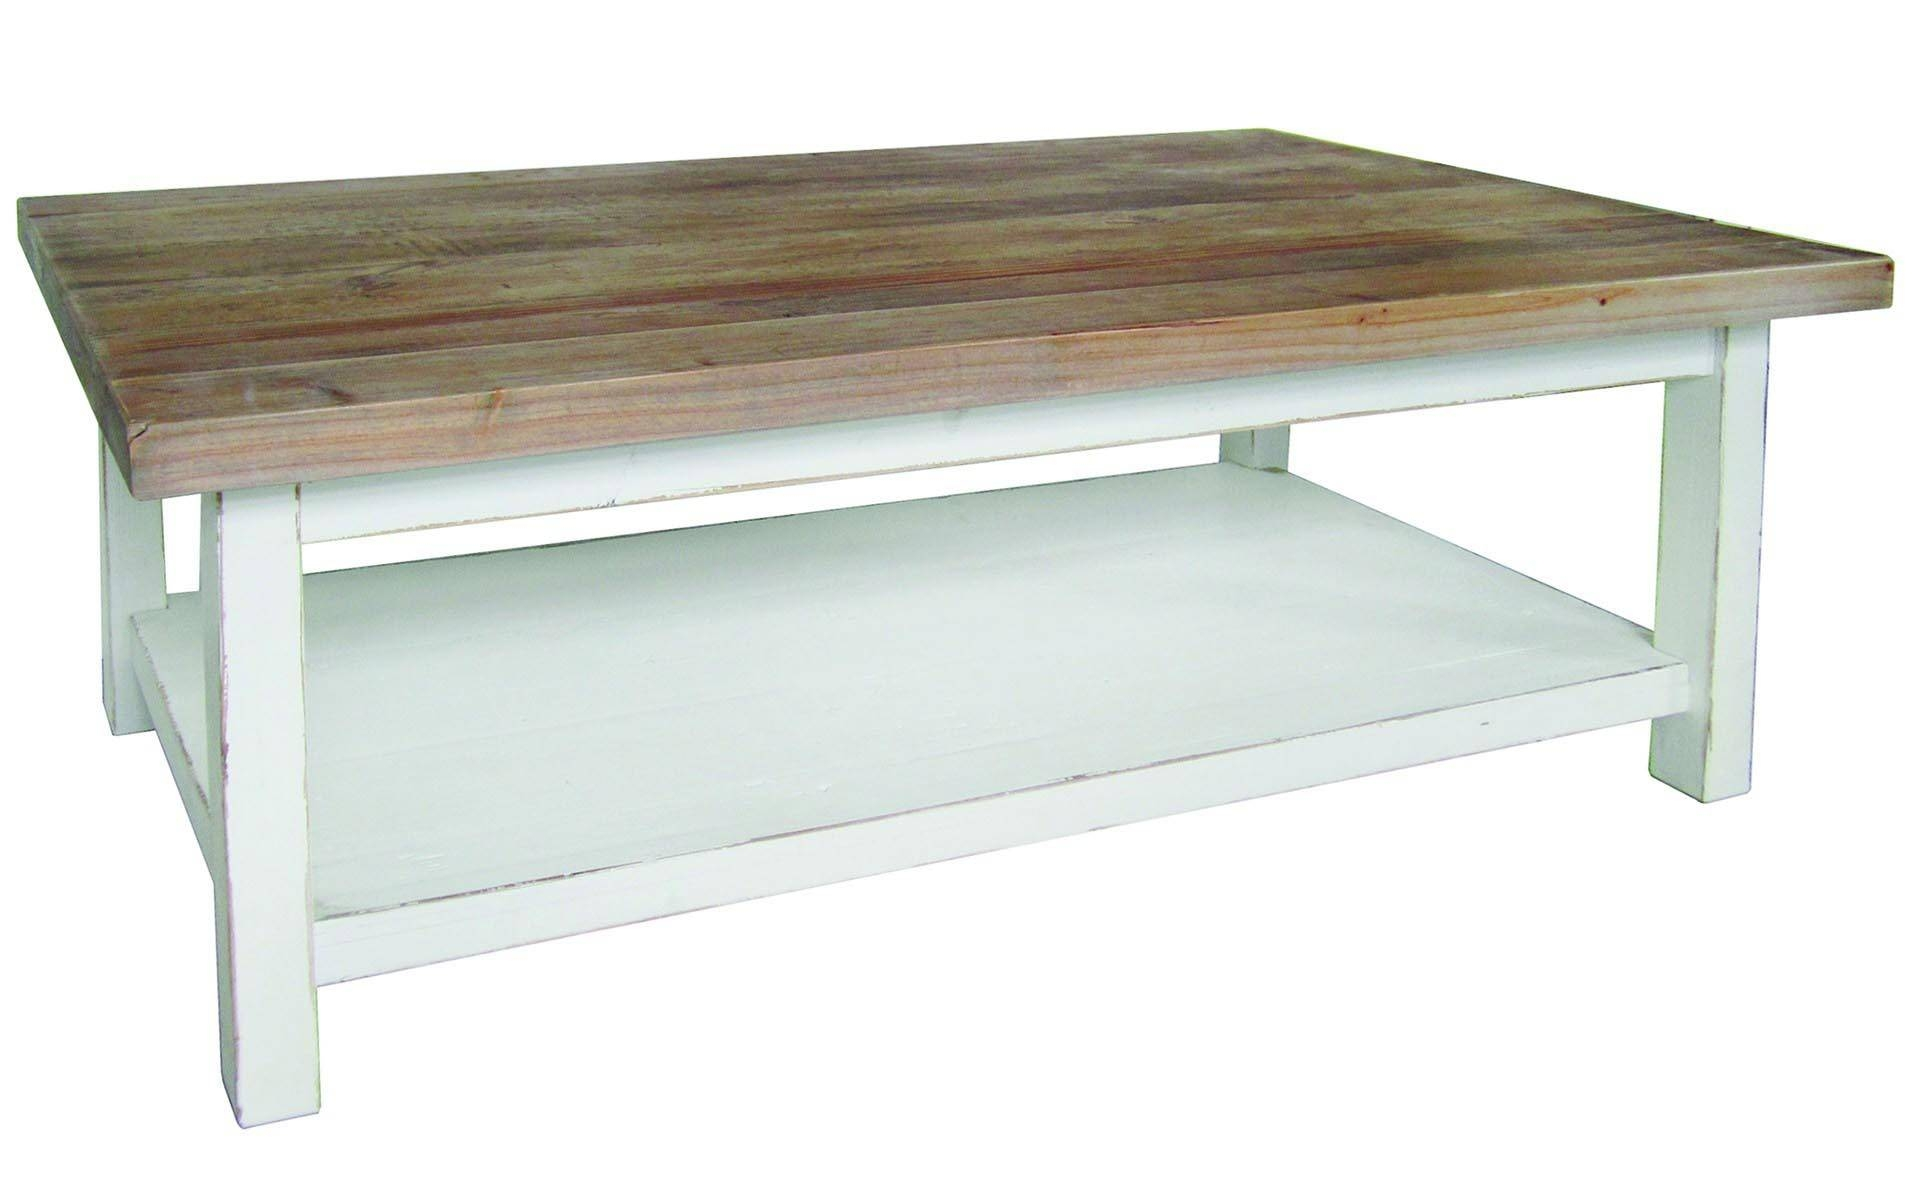 Square Pine Coffee Table | Coffee Table Design Ideas with Square Pine Coffee Tables (Image 29 of 30)